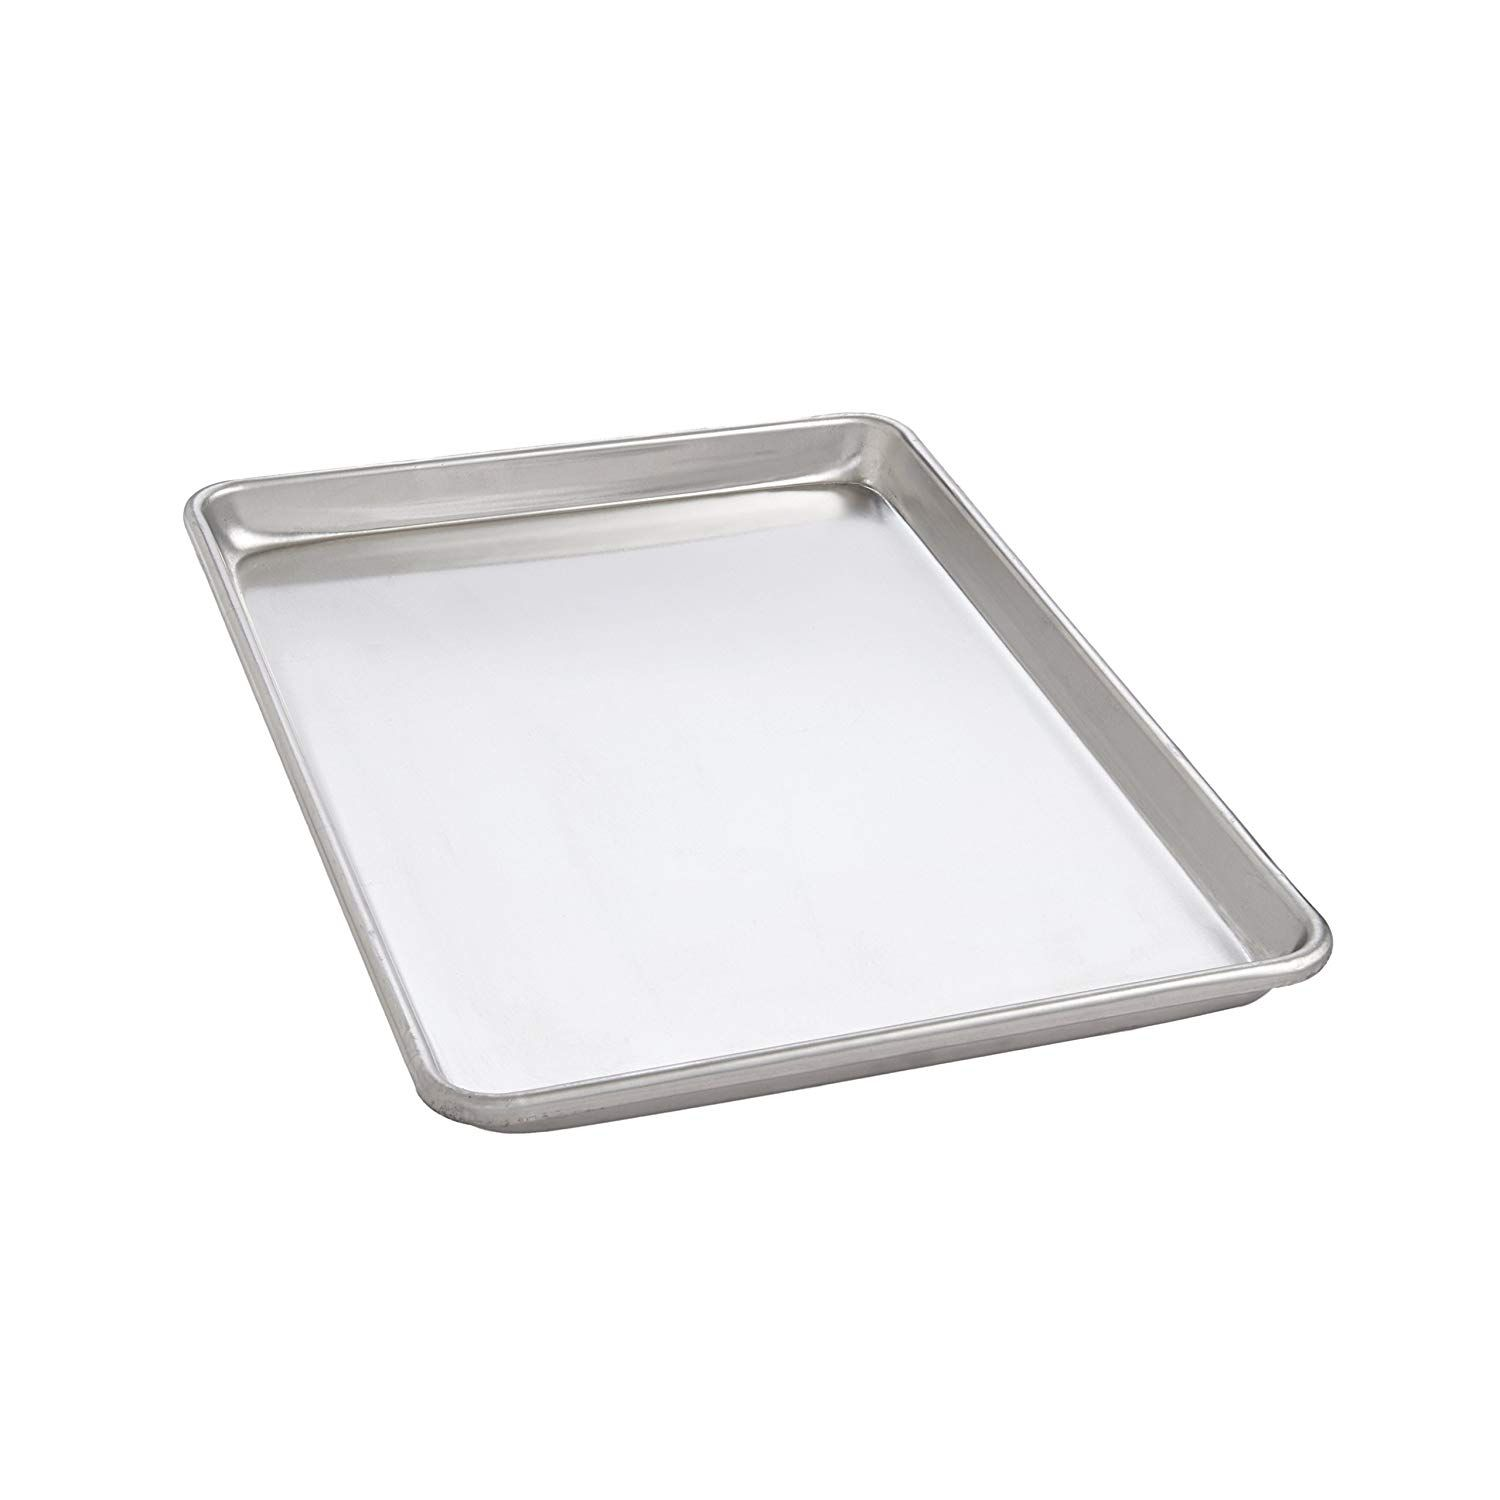 Mrs Anderson S Baking 31816 Mrs Andersona S Heavyweight Big Sheet Baking Pan Commercial Grade 19 Gauge Aluminum 16 X 22 Inches Baking Pans Pan Bakeware